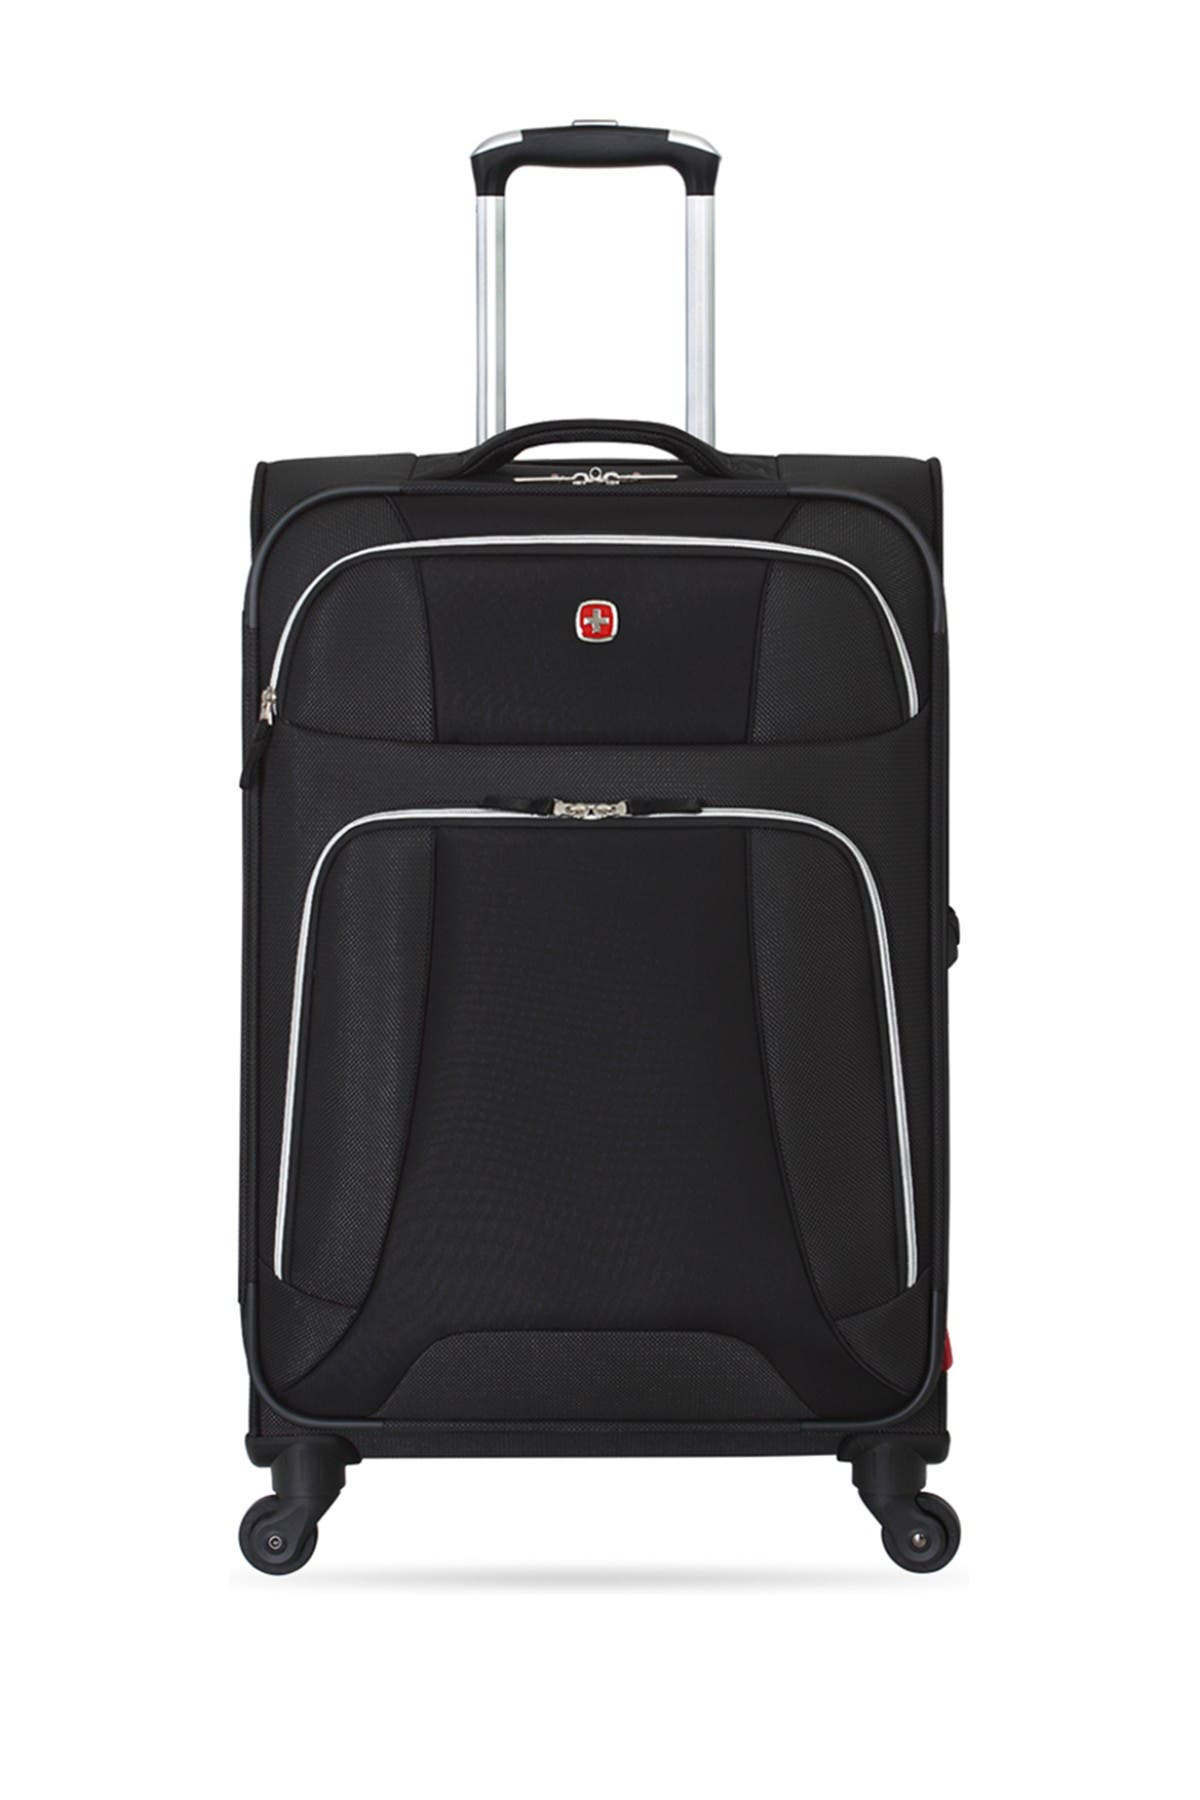 "Image of SwissGear 24.5"" Wenger Monte Leone Spinner Suitcase"